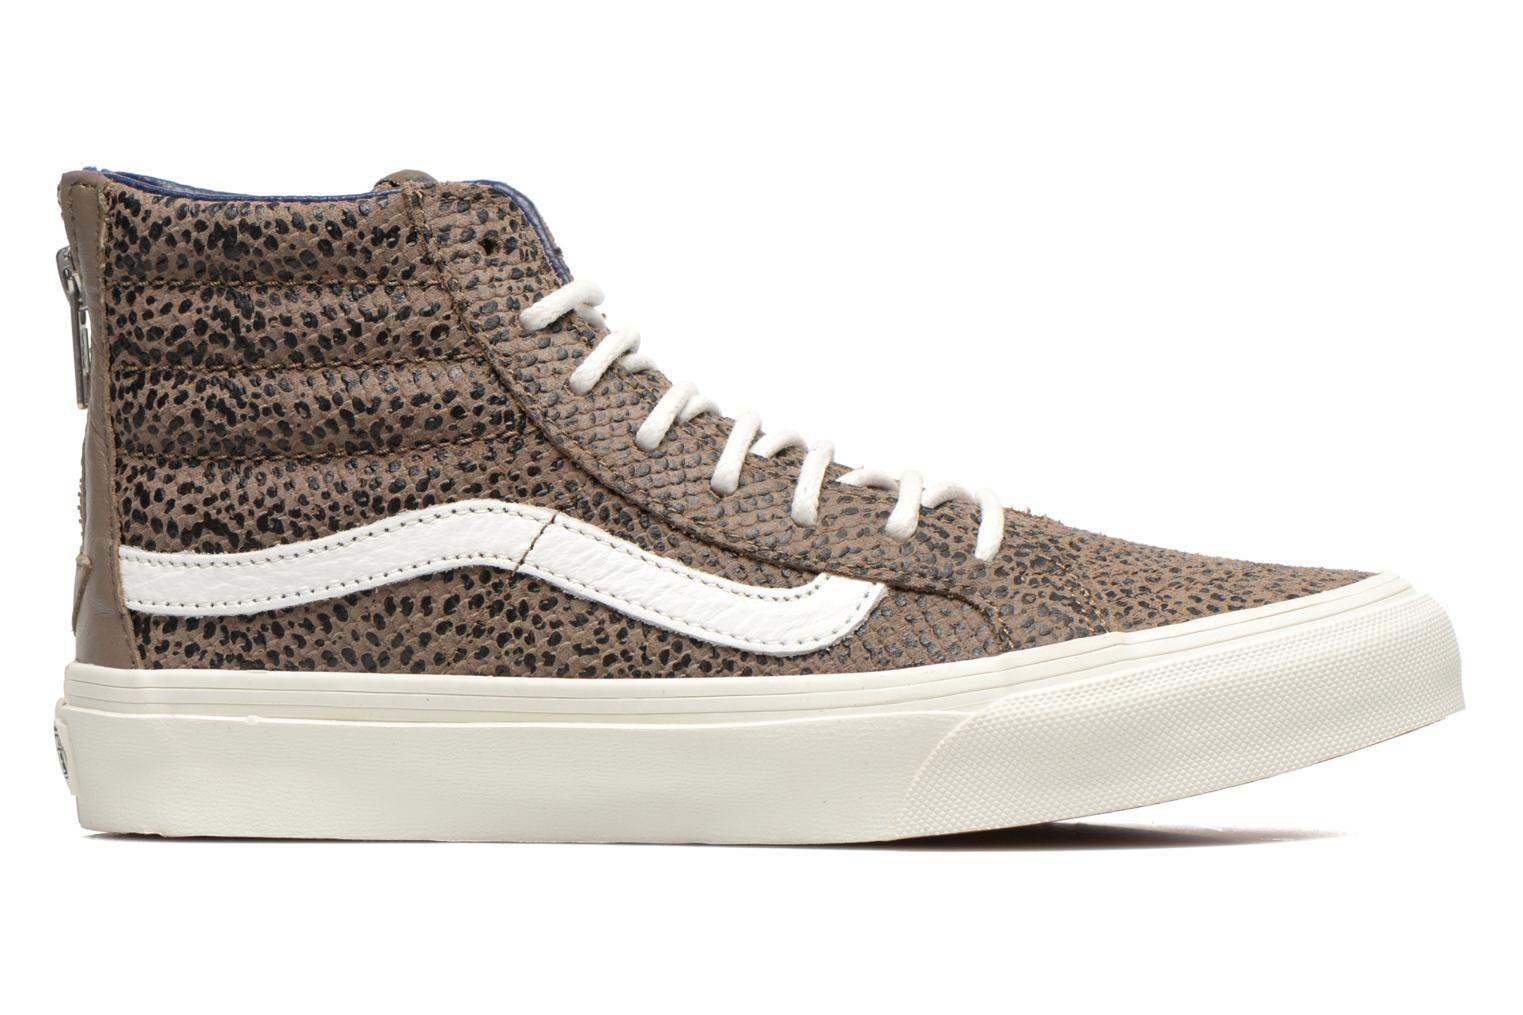 SK8-Hi Slim Zip (Cheetah Suede) black/tan